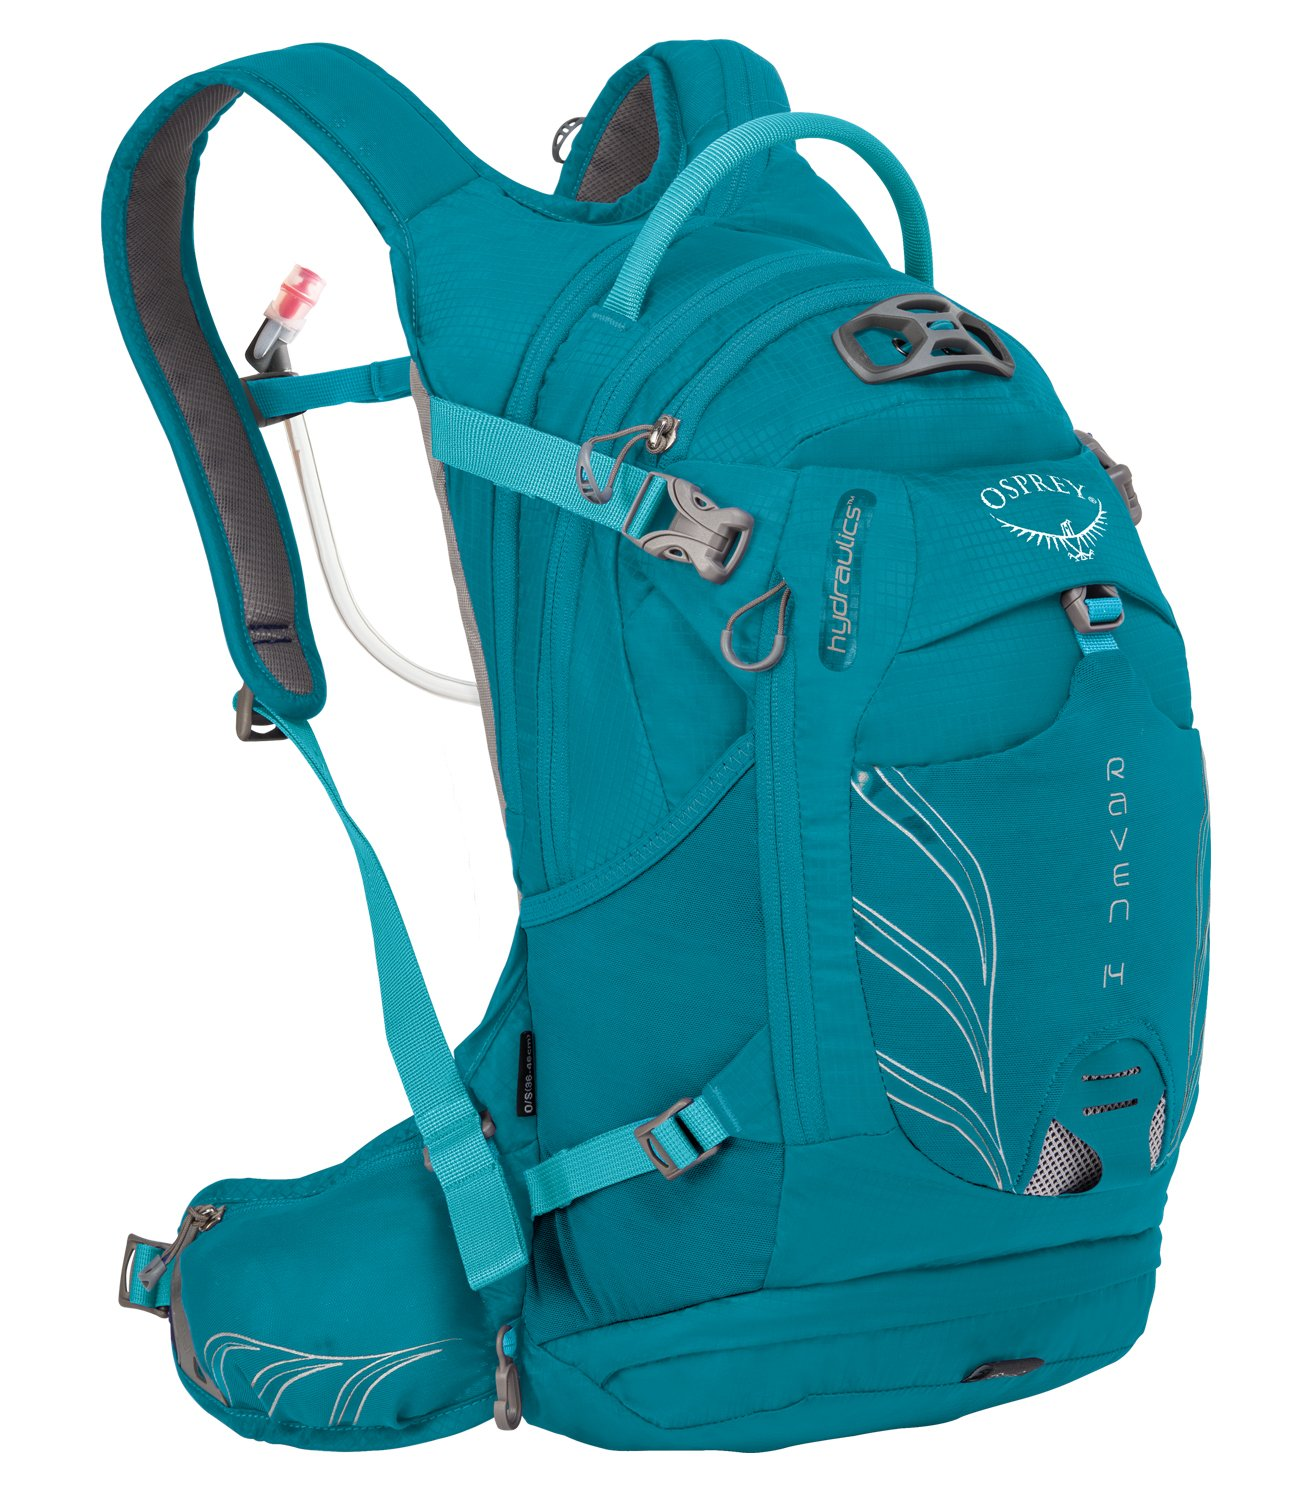 Osprey Packs Women's Raven 14 Hydration Pack, Tempo Teal by Osprey (Image #1)